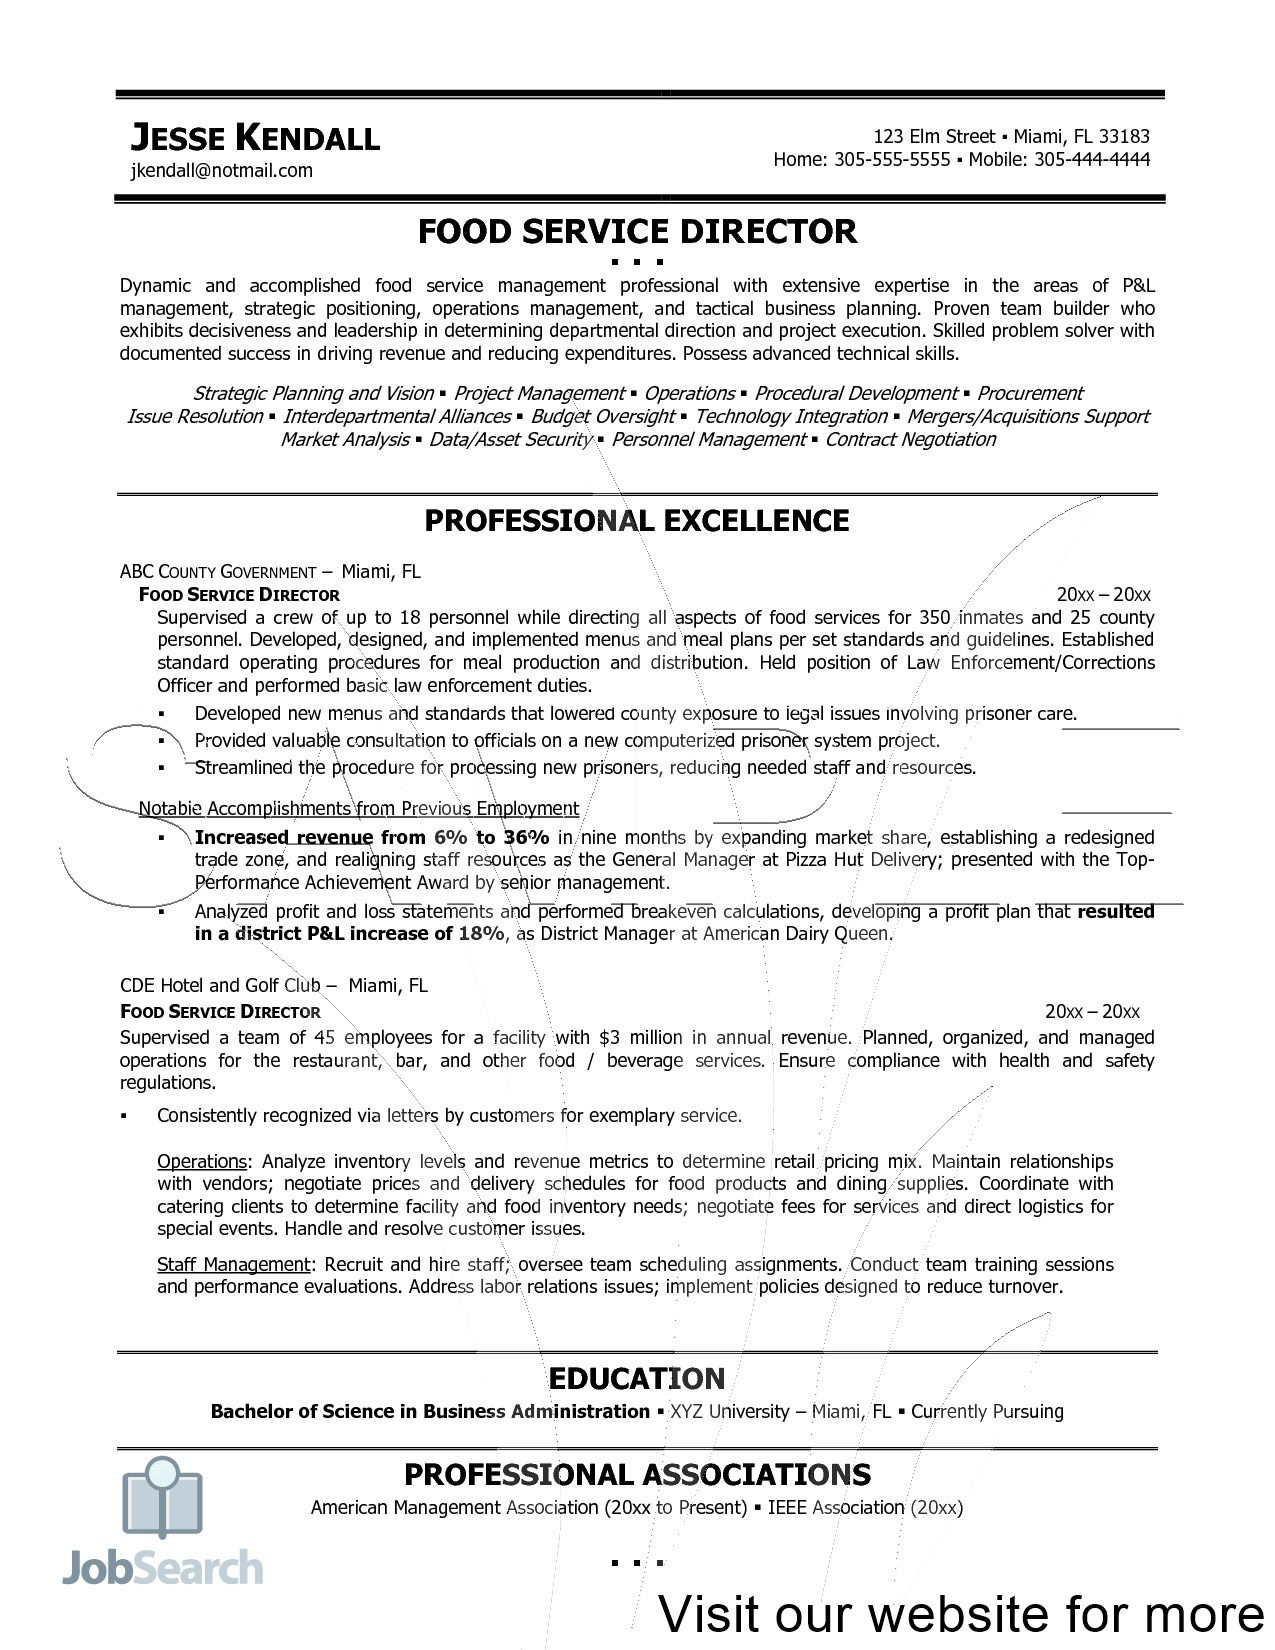 Basic Resume Examples Professional Job Resume Samples Resume Examples Resume